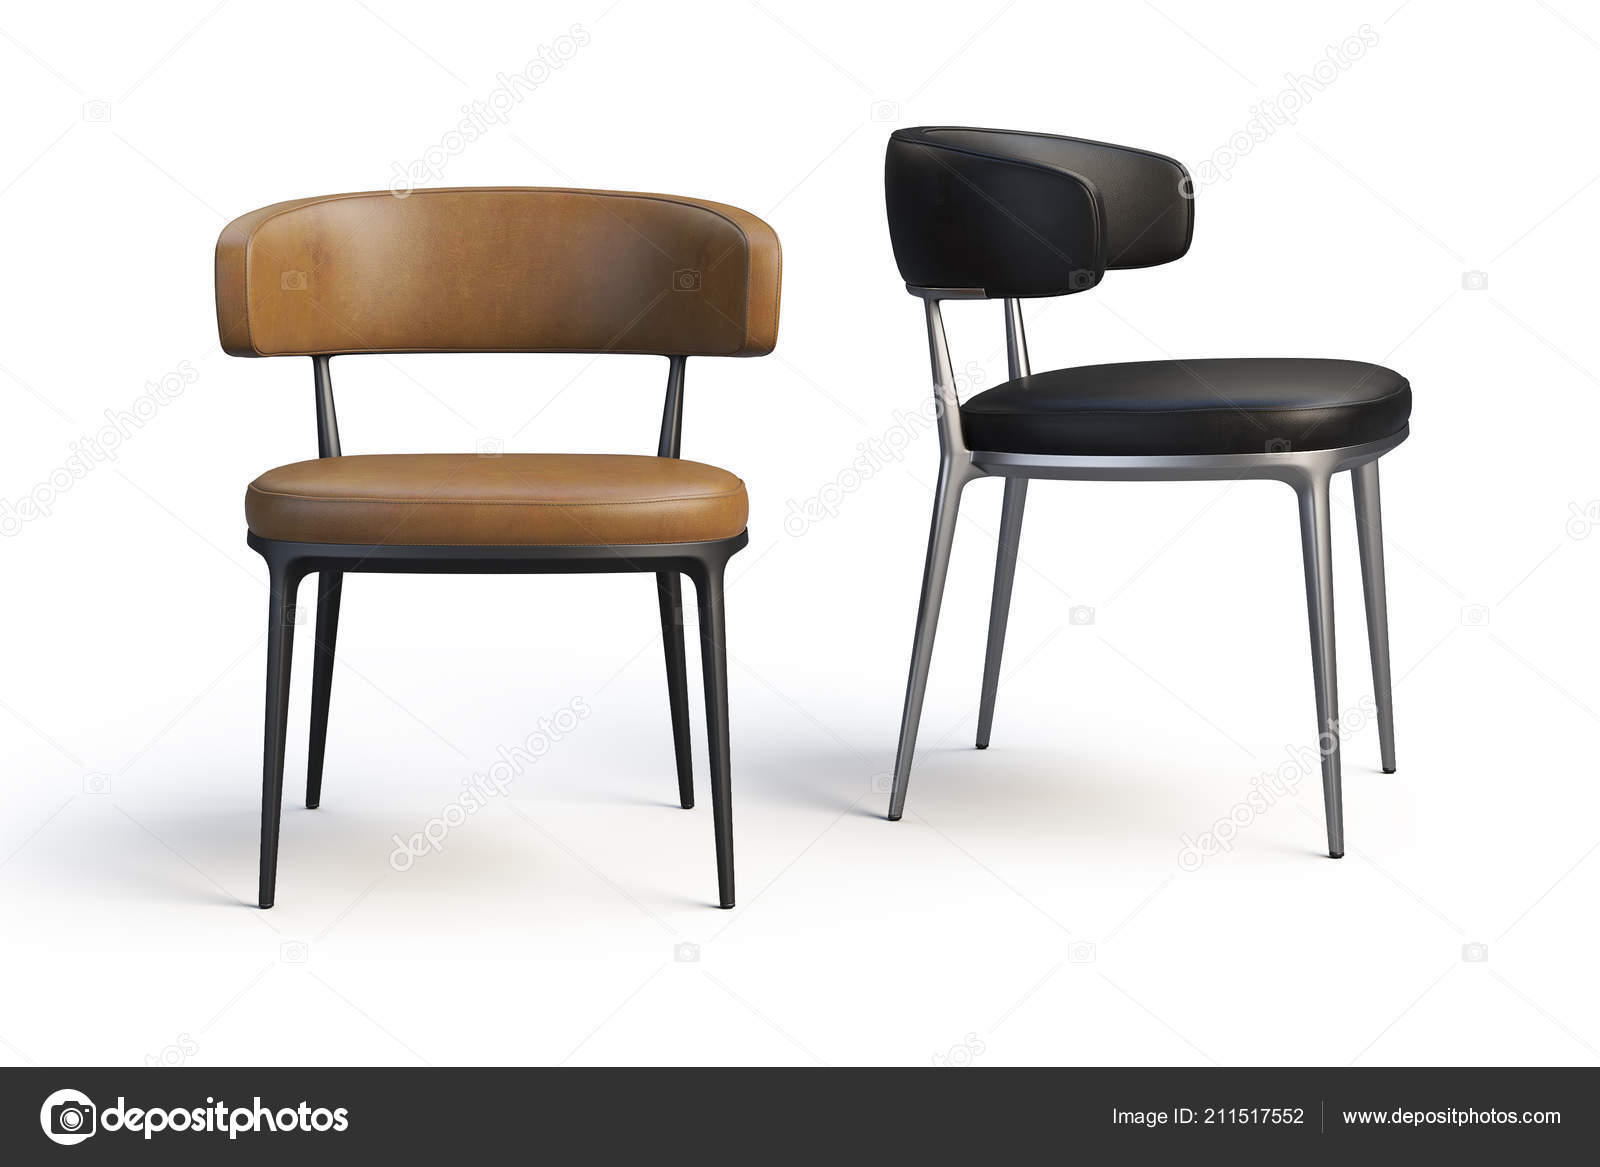 Picture of: Brown Black Leather Chairs Metal Legs White Background Shadows Render Stock Photo C 3dmitruk 211517552